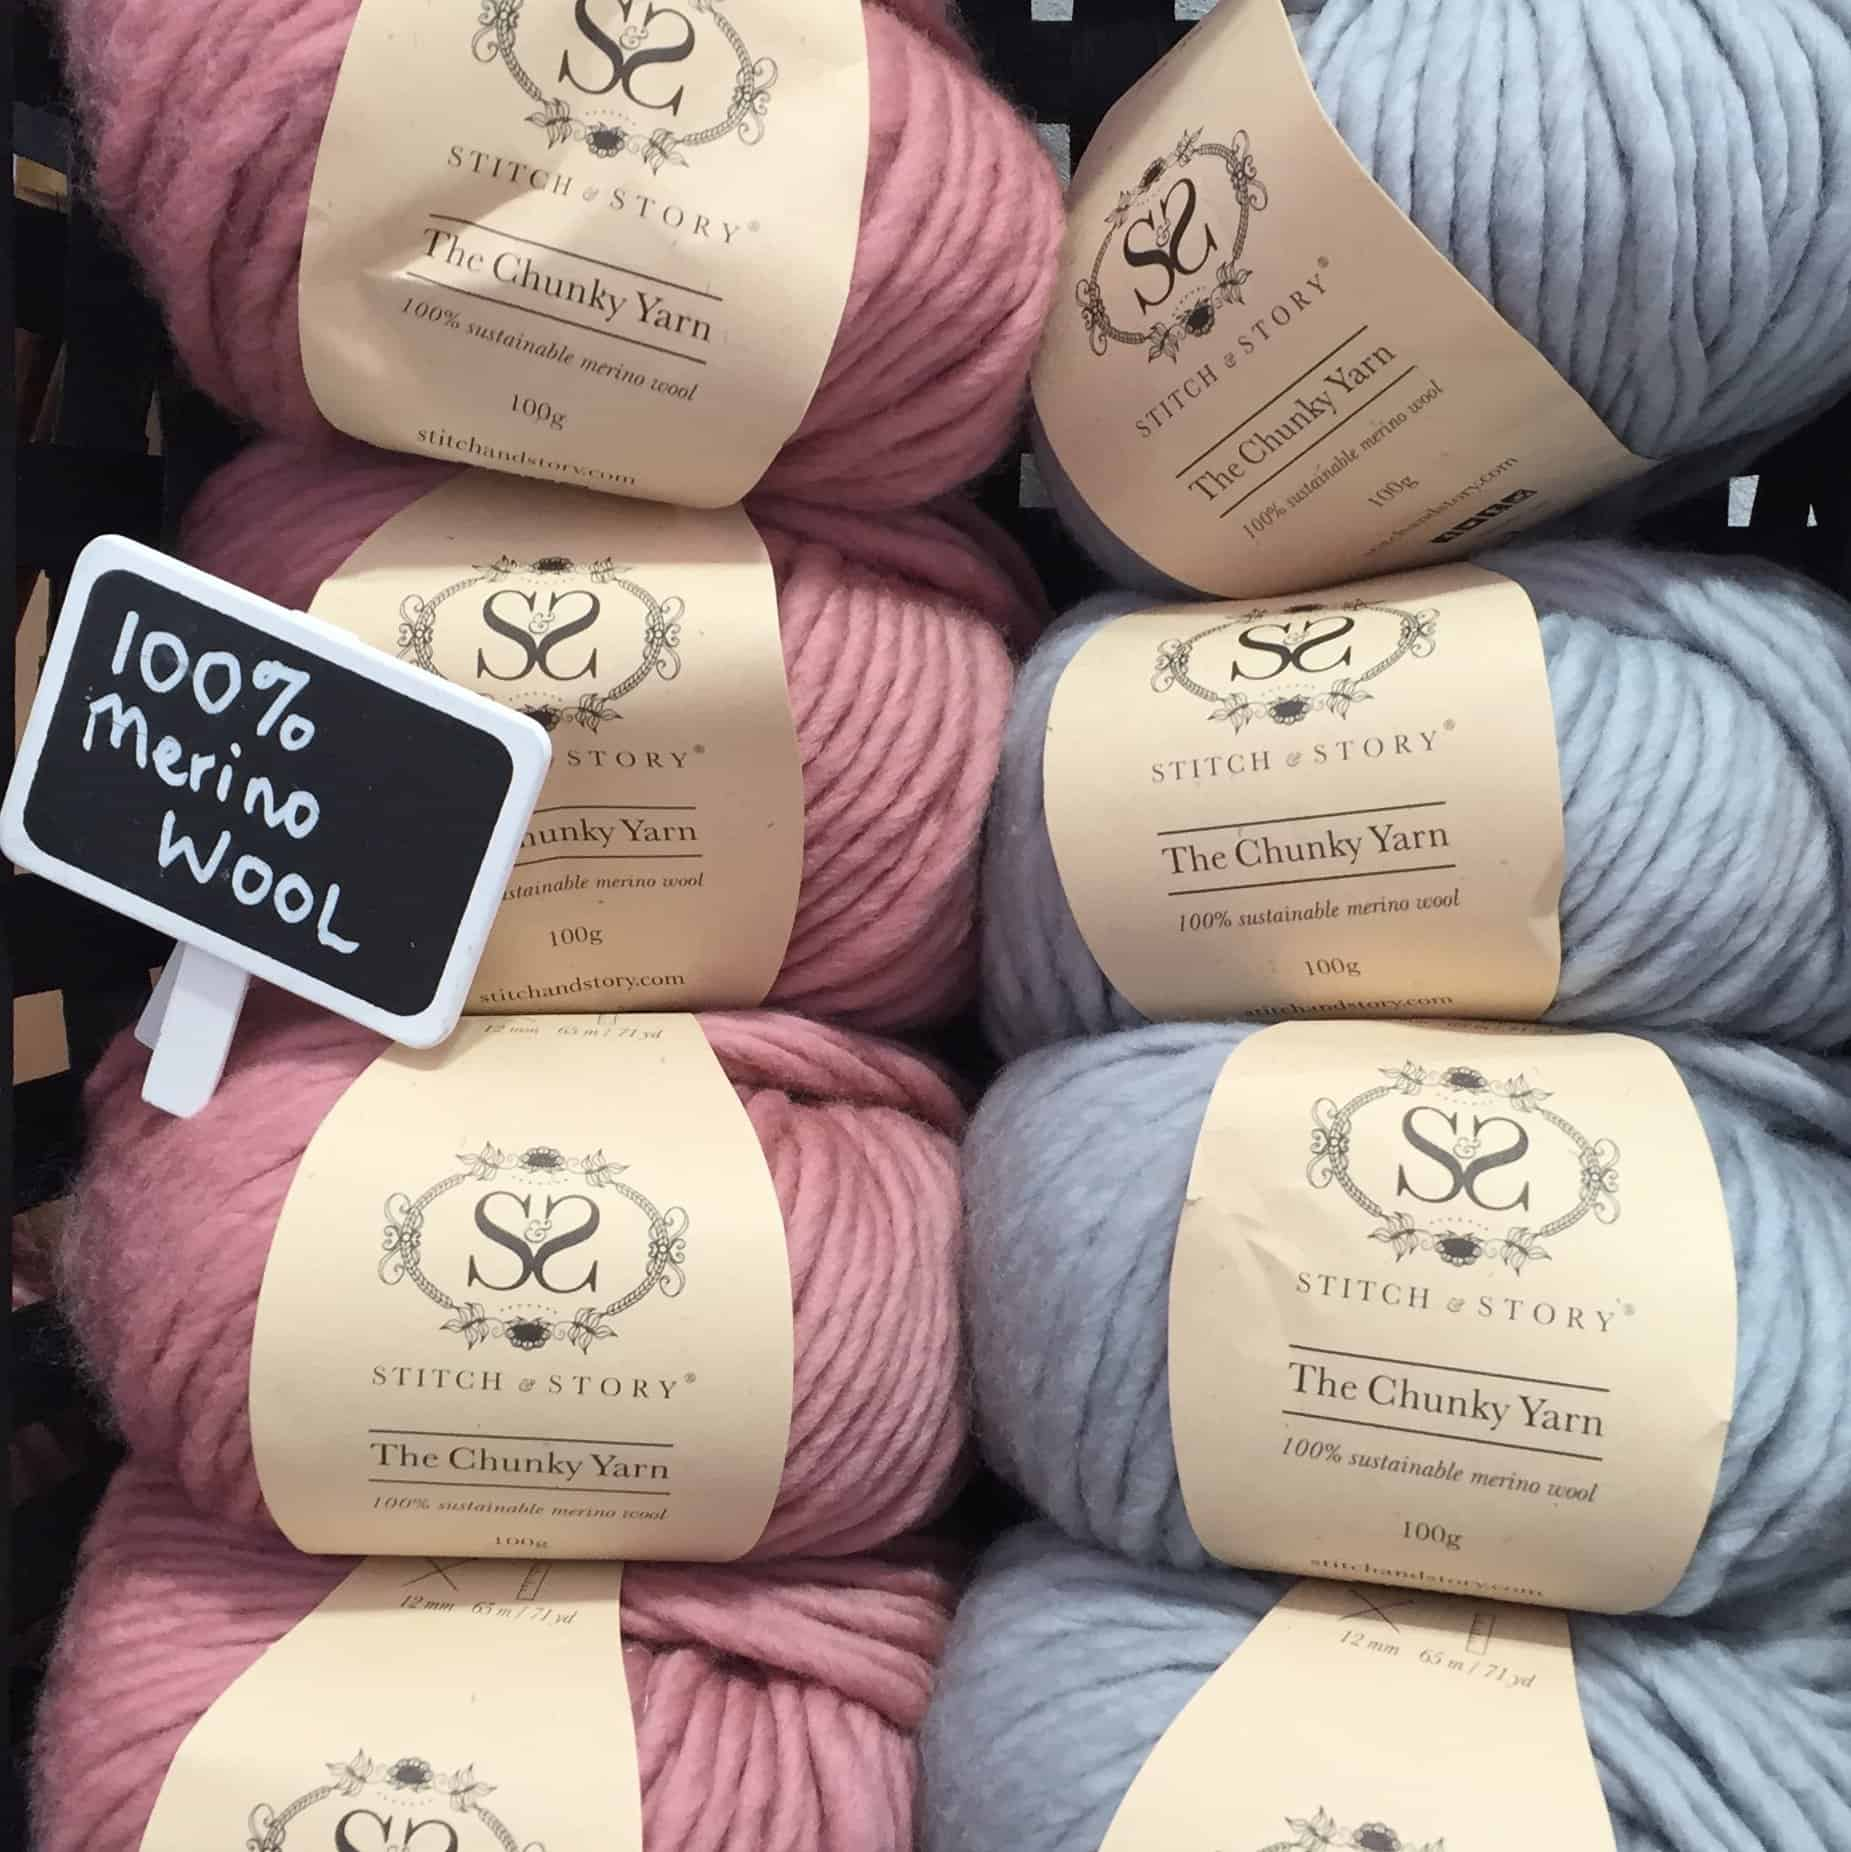 Wool at The Handmade Fair